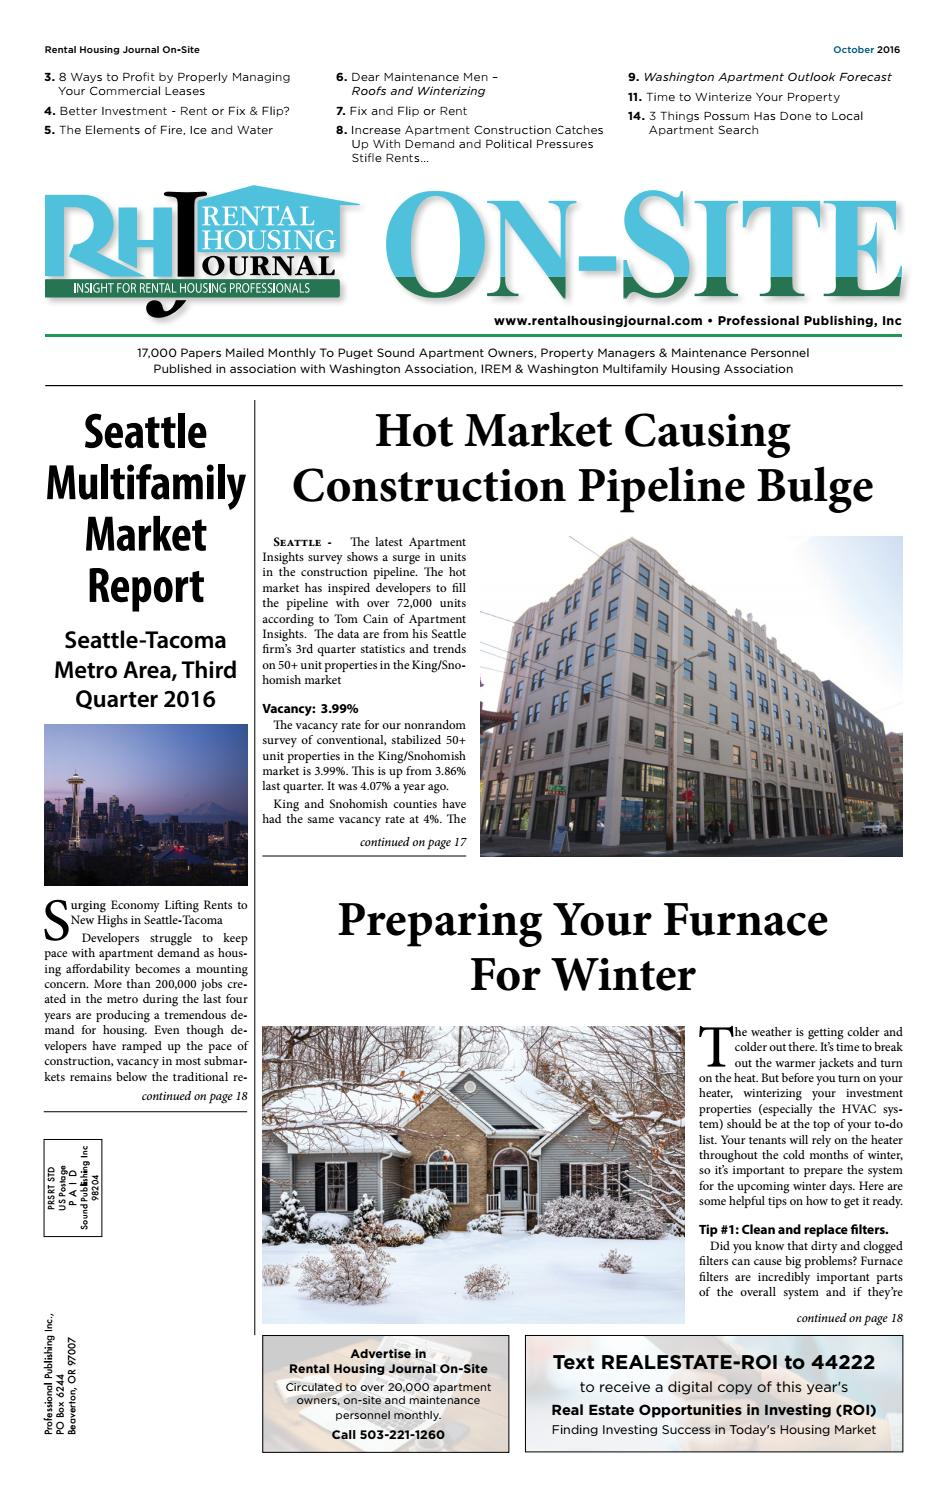 rental housing journal on-site october 2016 by professional